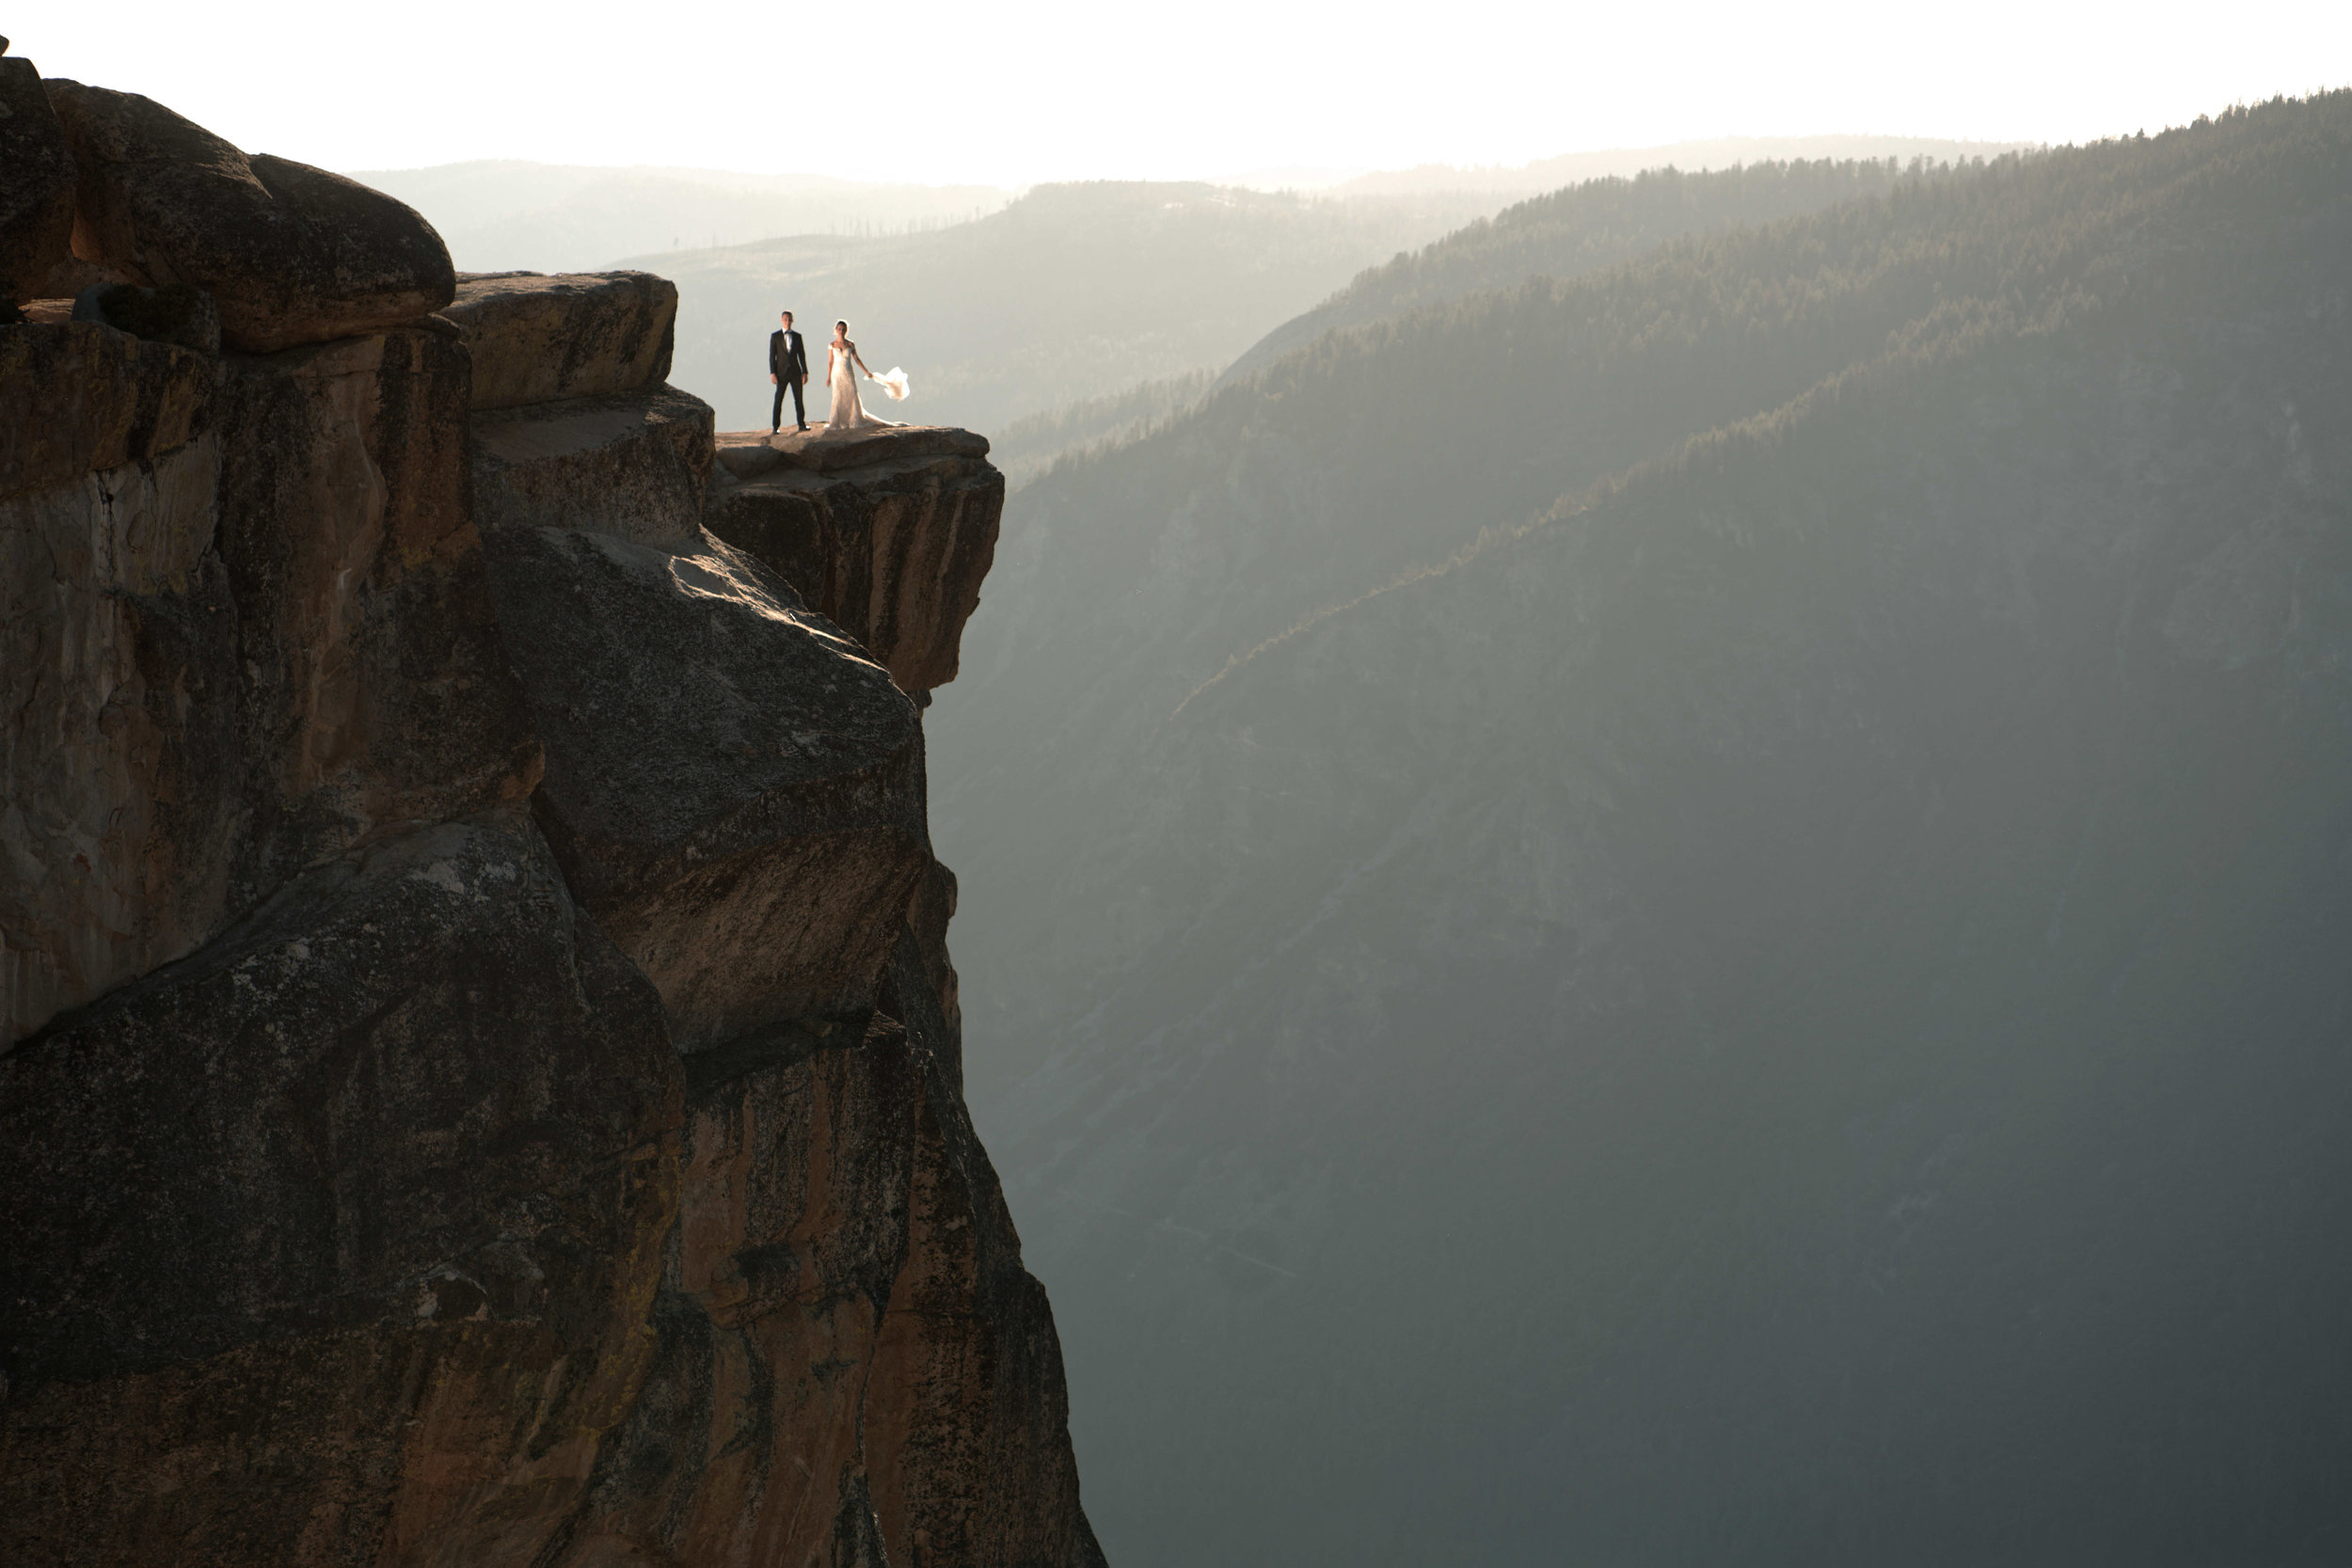 yosemite-adventure-wedding-amyjames (129).jpg